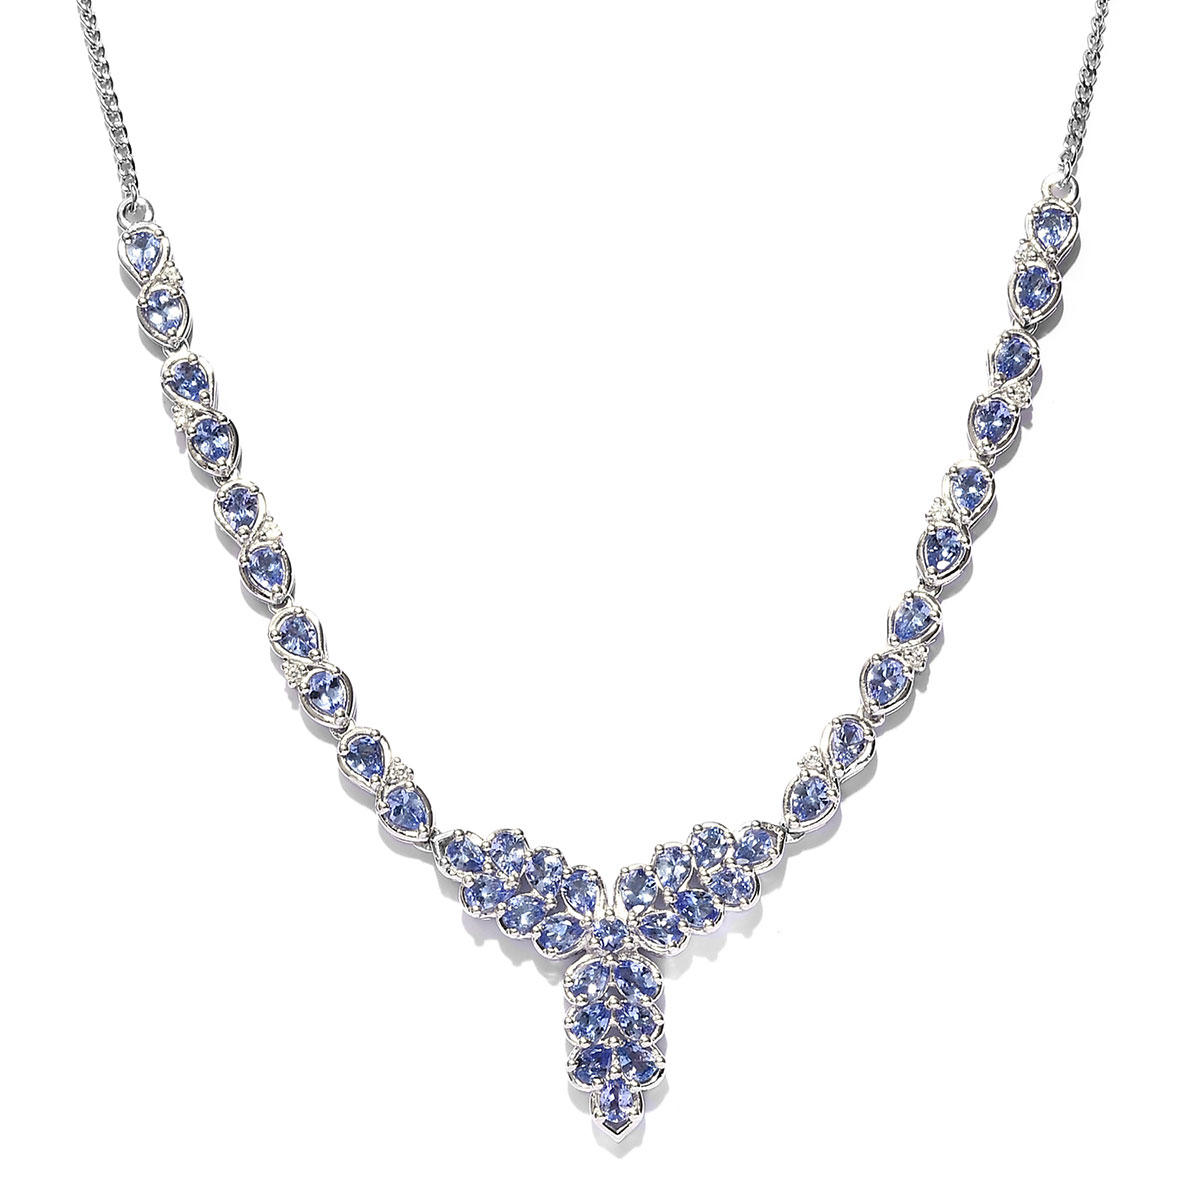 Tanzanite, Cambodian Zircon Necklace (18 in) in Platinum Over Sterling Silver 6.11 ctw